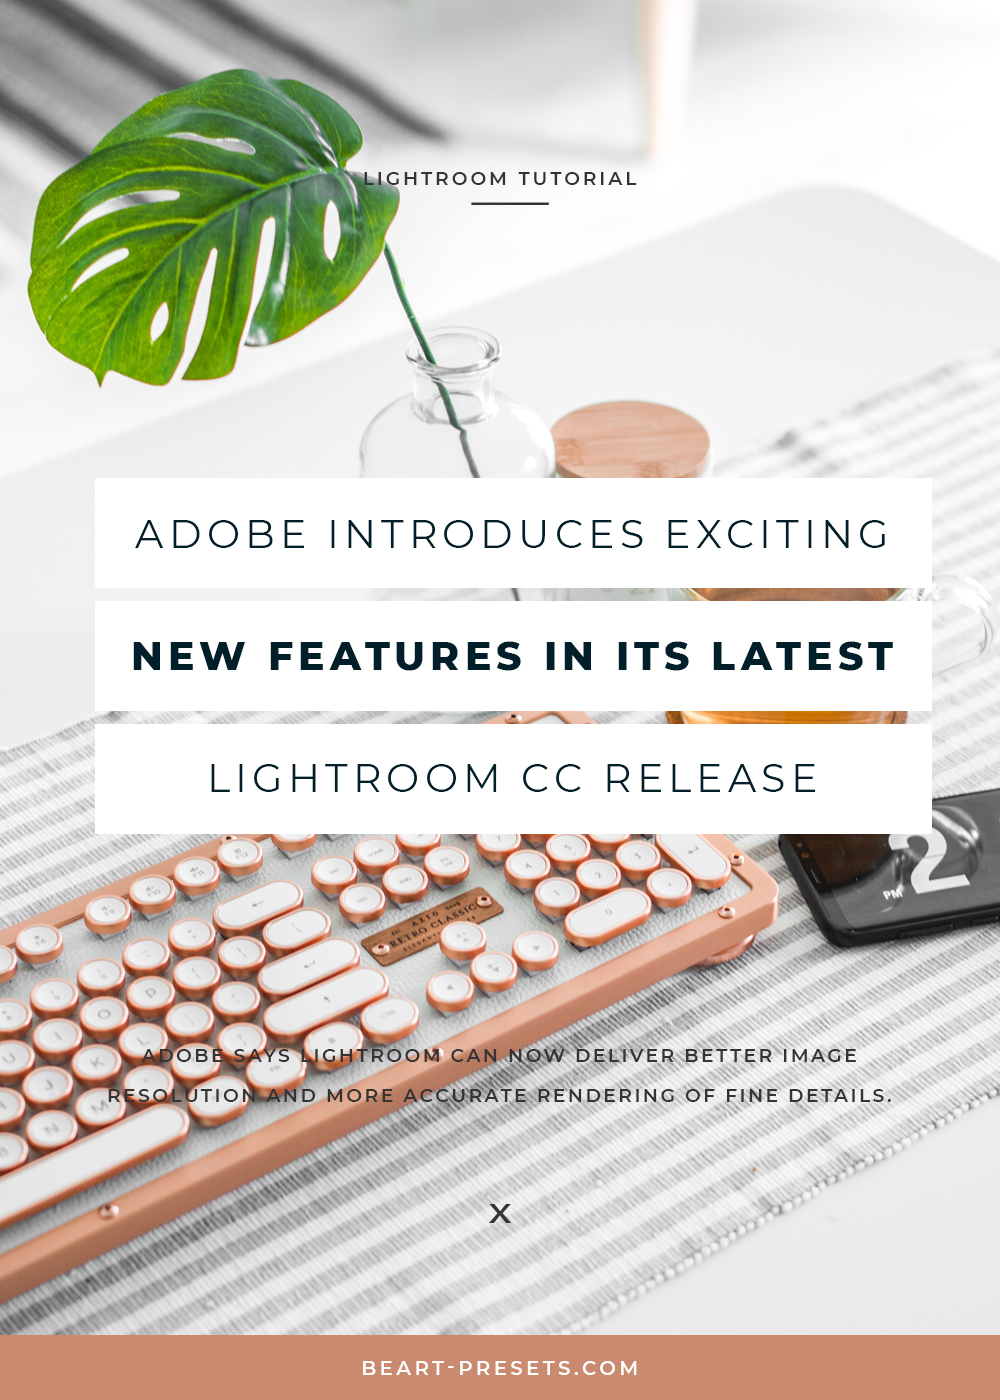 NEW FEATURE LIGHTROOM